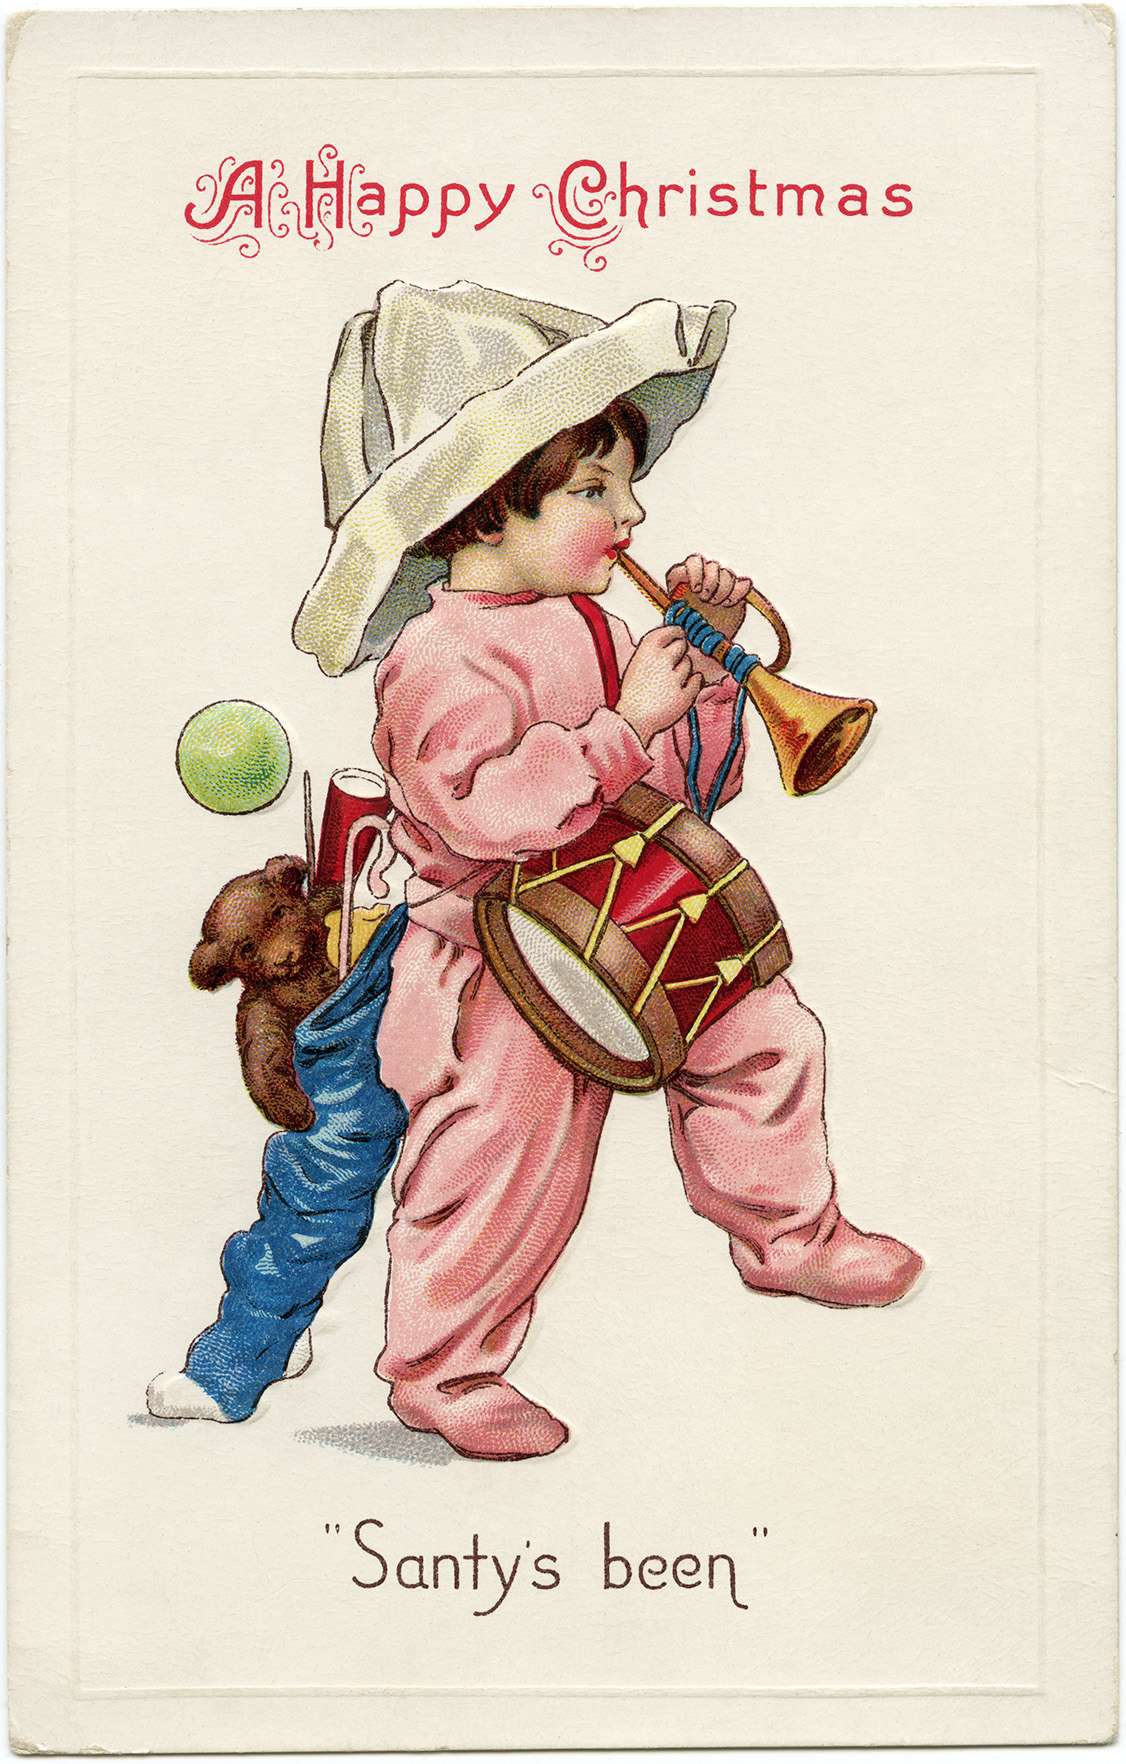 vintage Christmas postcard, Santy's Been, old Christmas toys, child marching with toys, old fashioned Christmas card